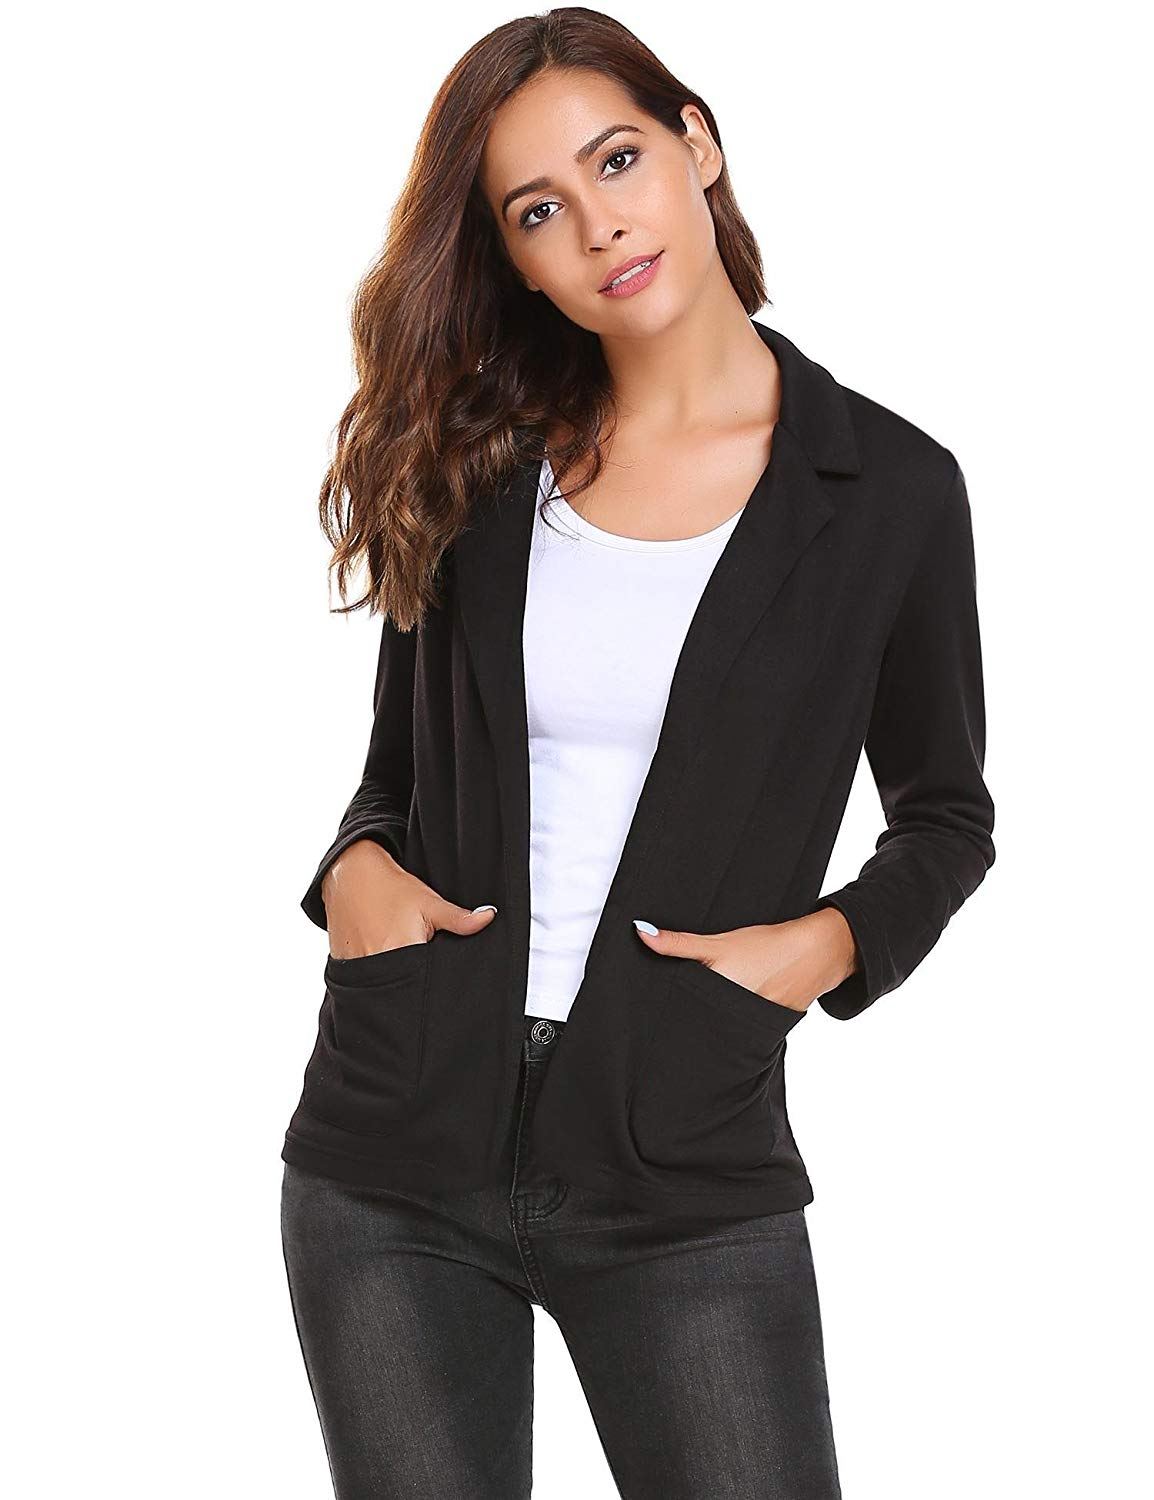 0dccef5ed14 Get Quotations · Nessere Blazer Coat Womens Womens Blazers Plus Size Fitted  Blazer Casual Jackets